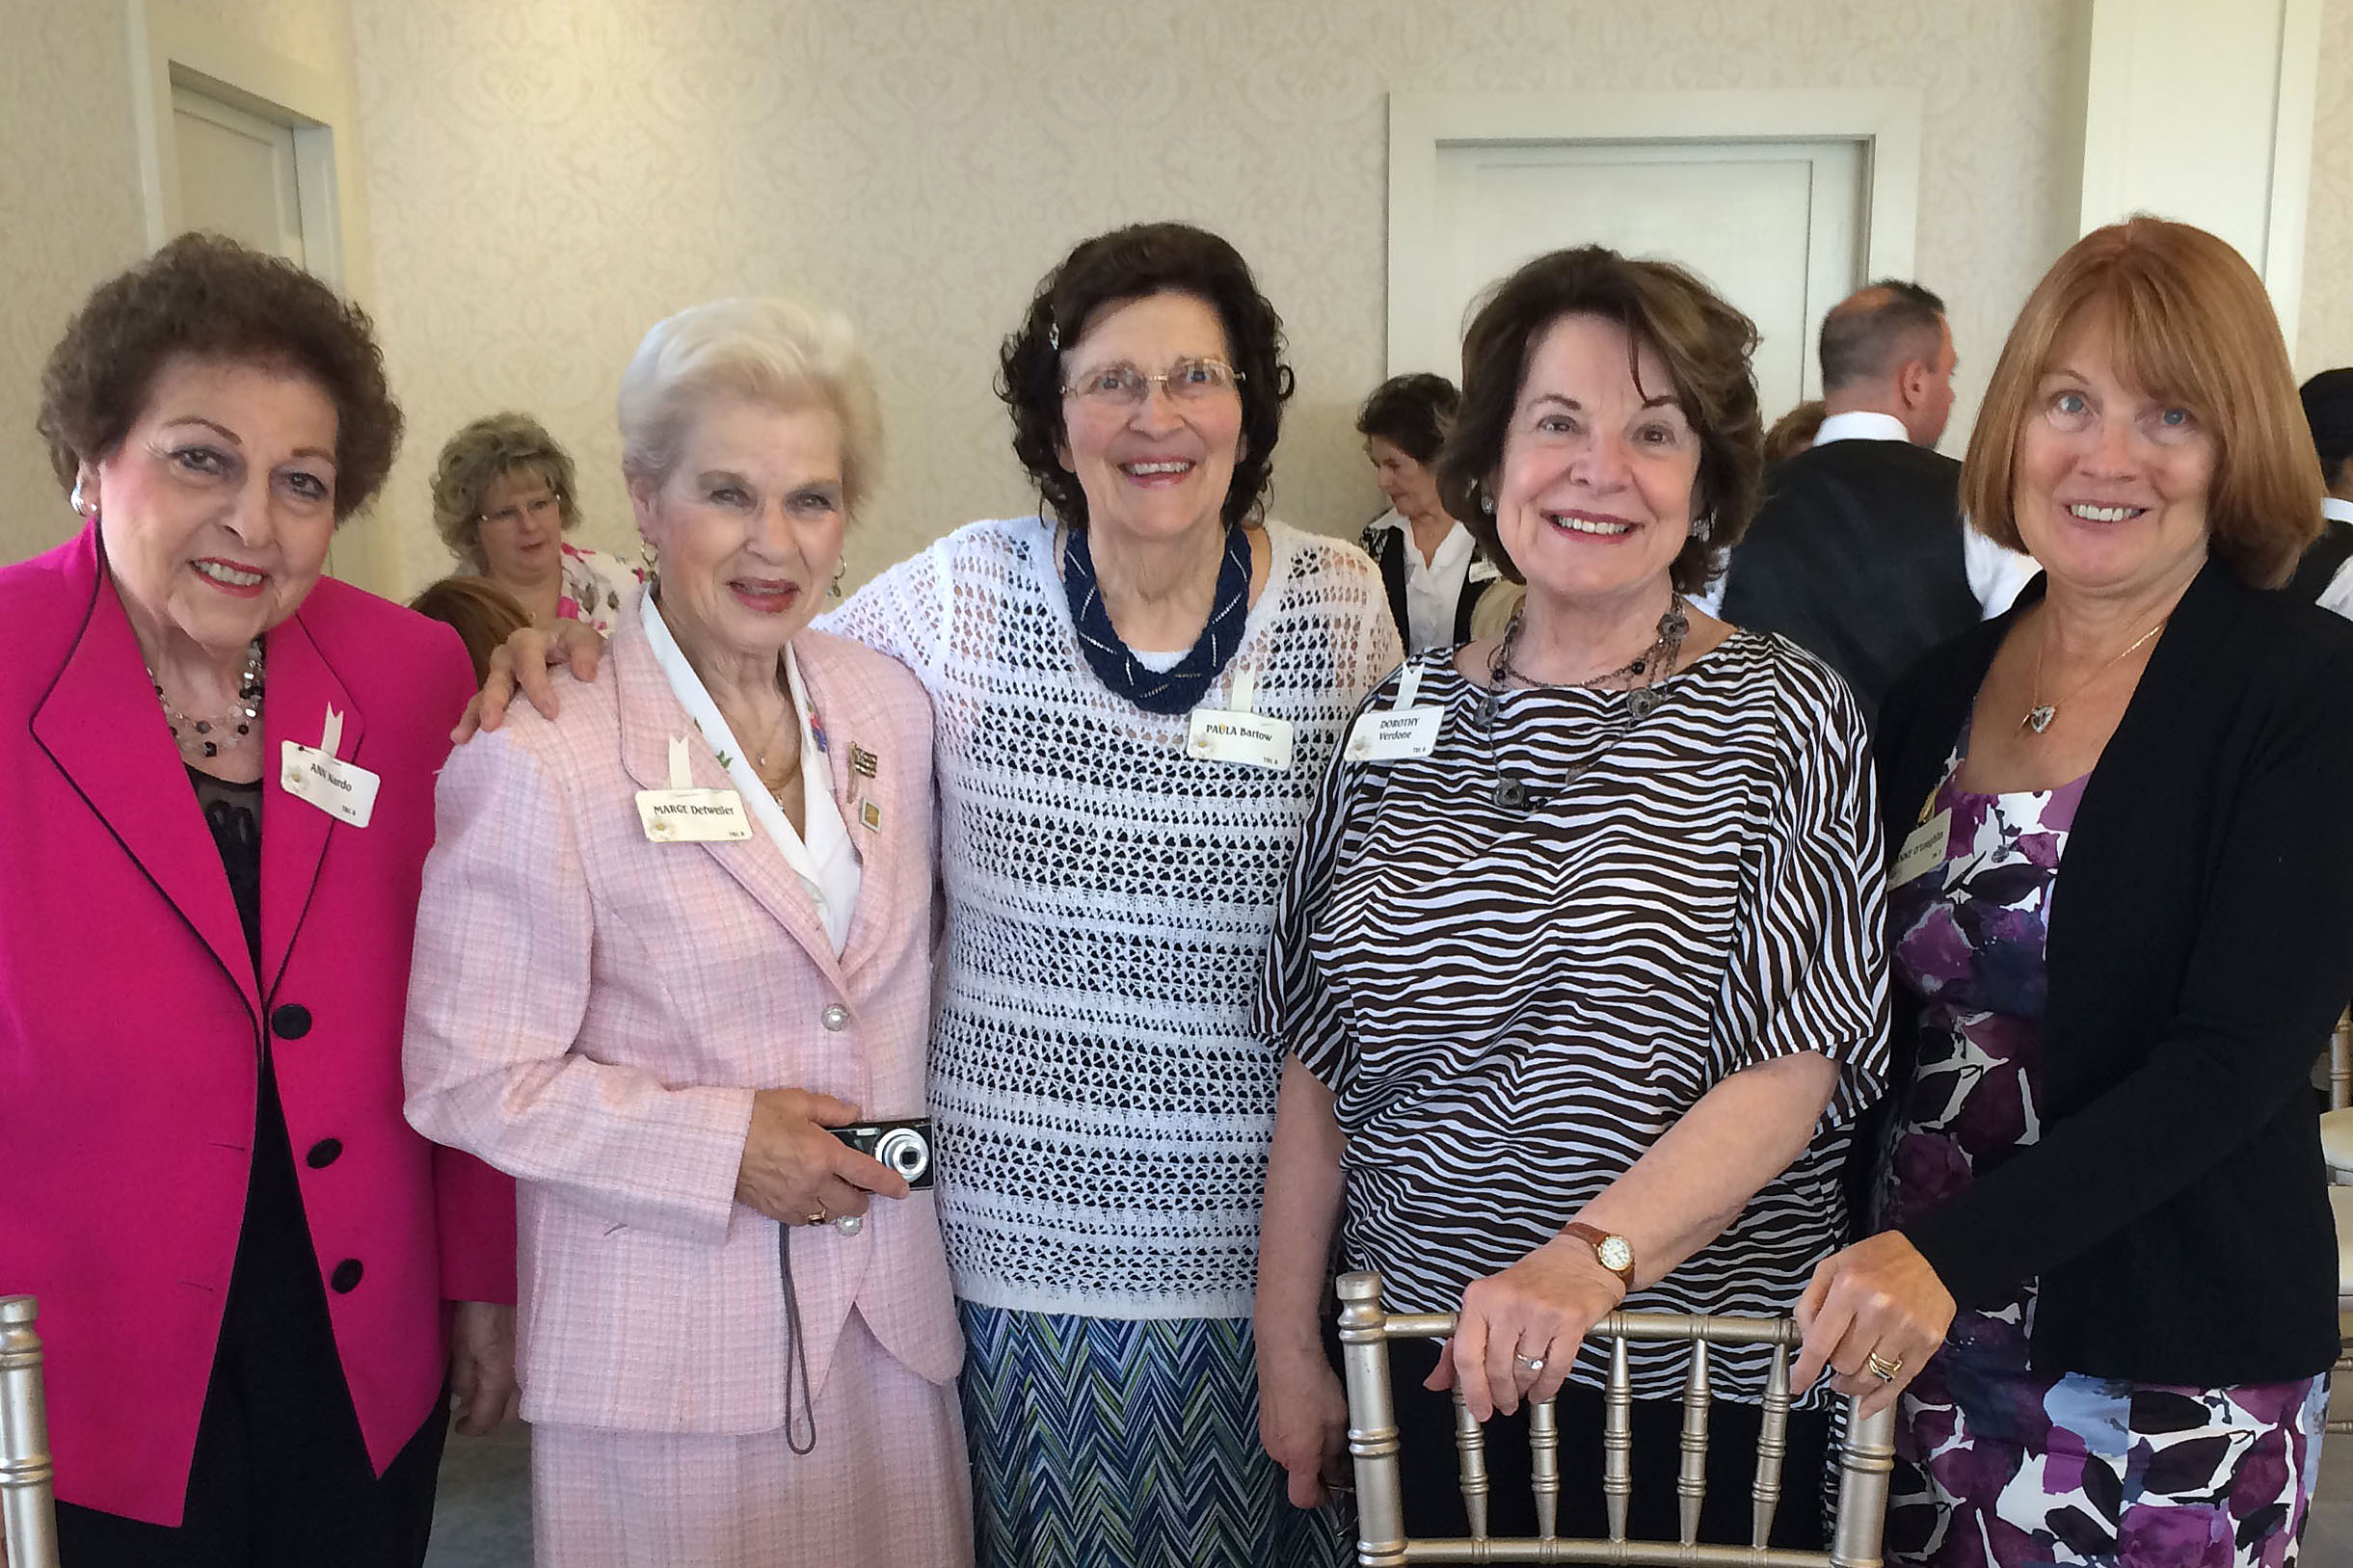 Ann Nardo, Marjorie Detweiler, Paula Bartow, Dorothy Verdone and Anne O'Loughlin enjoyed the 2016 Achievement Day Luncheon.